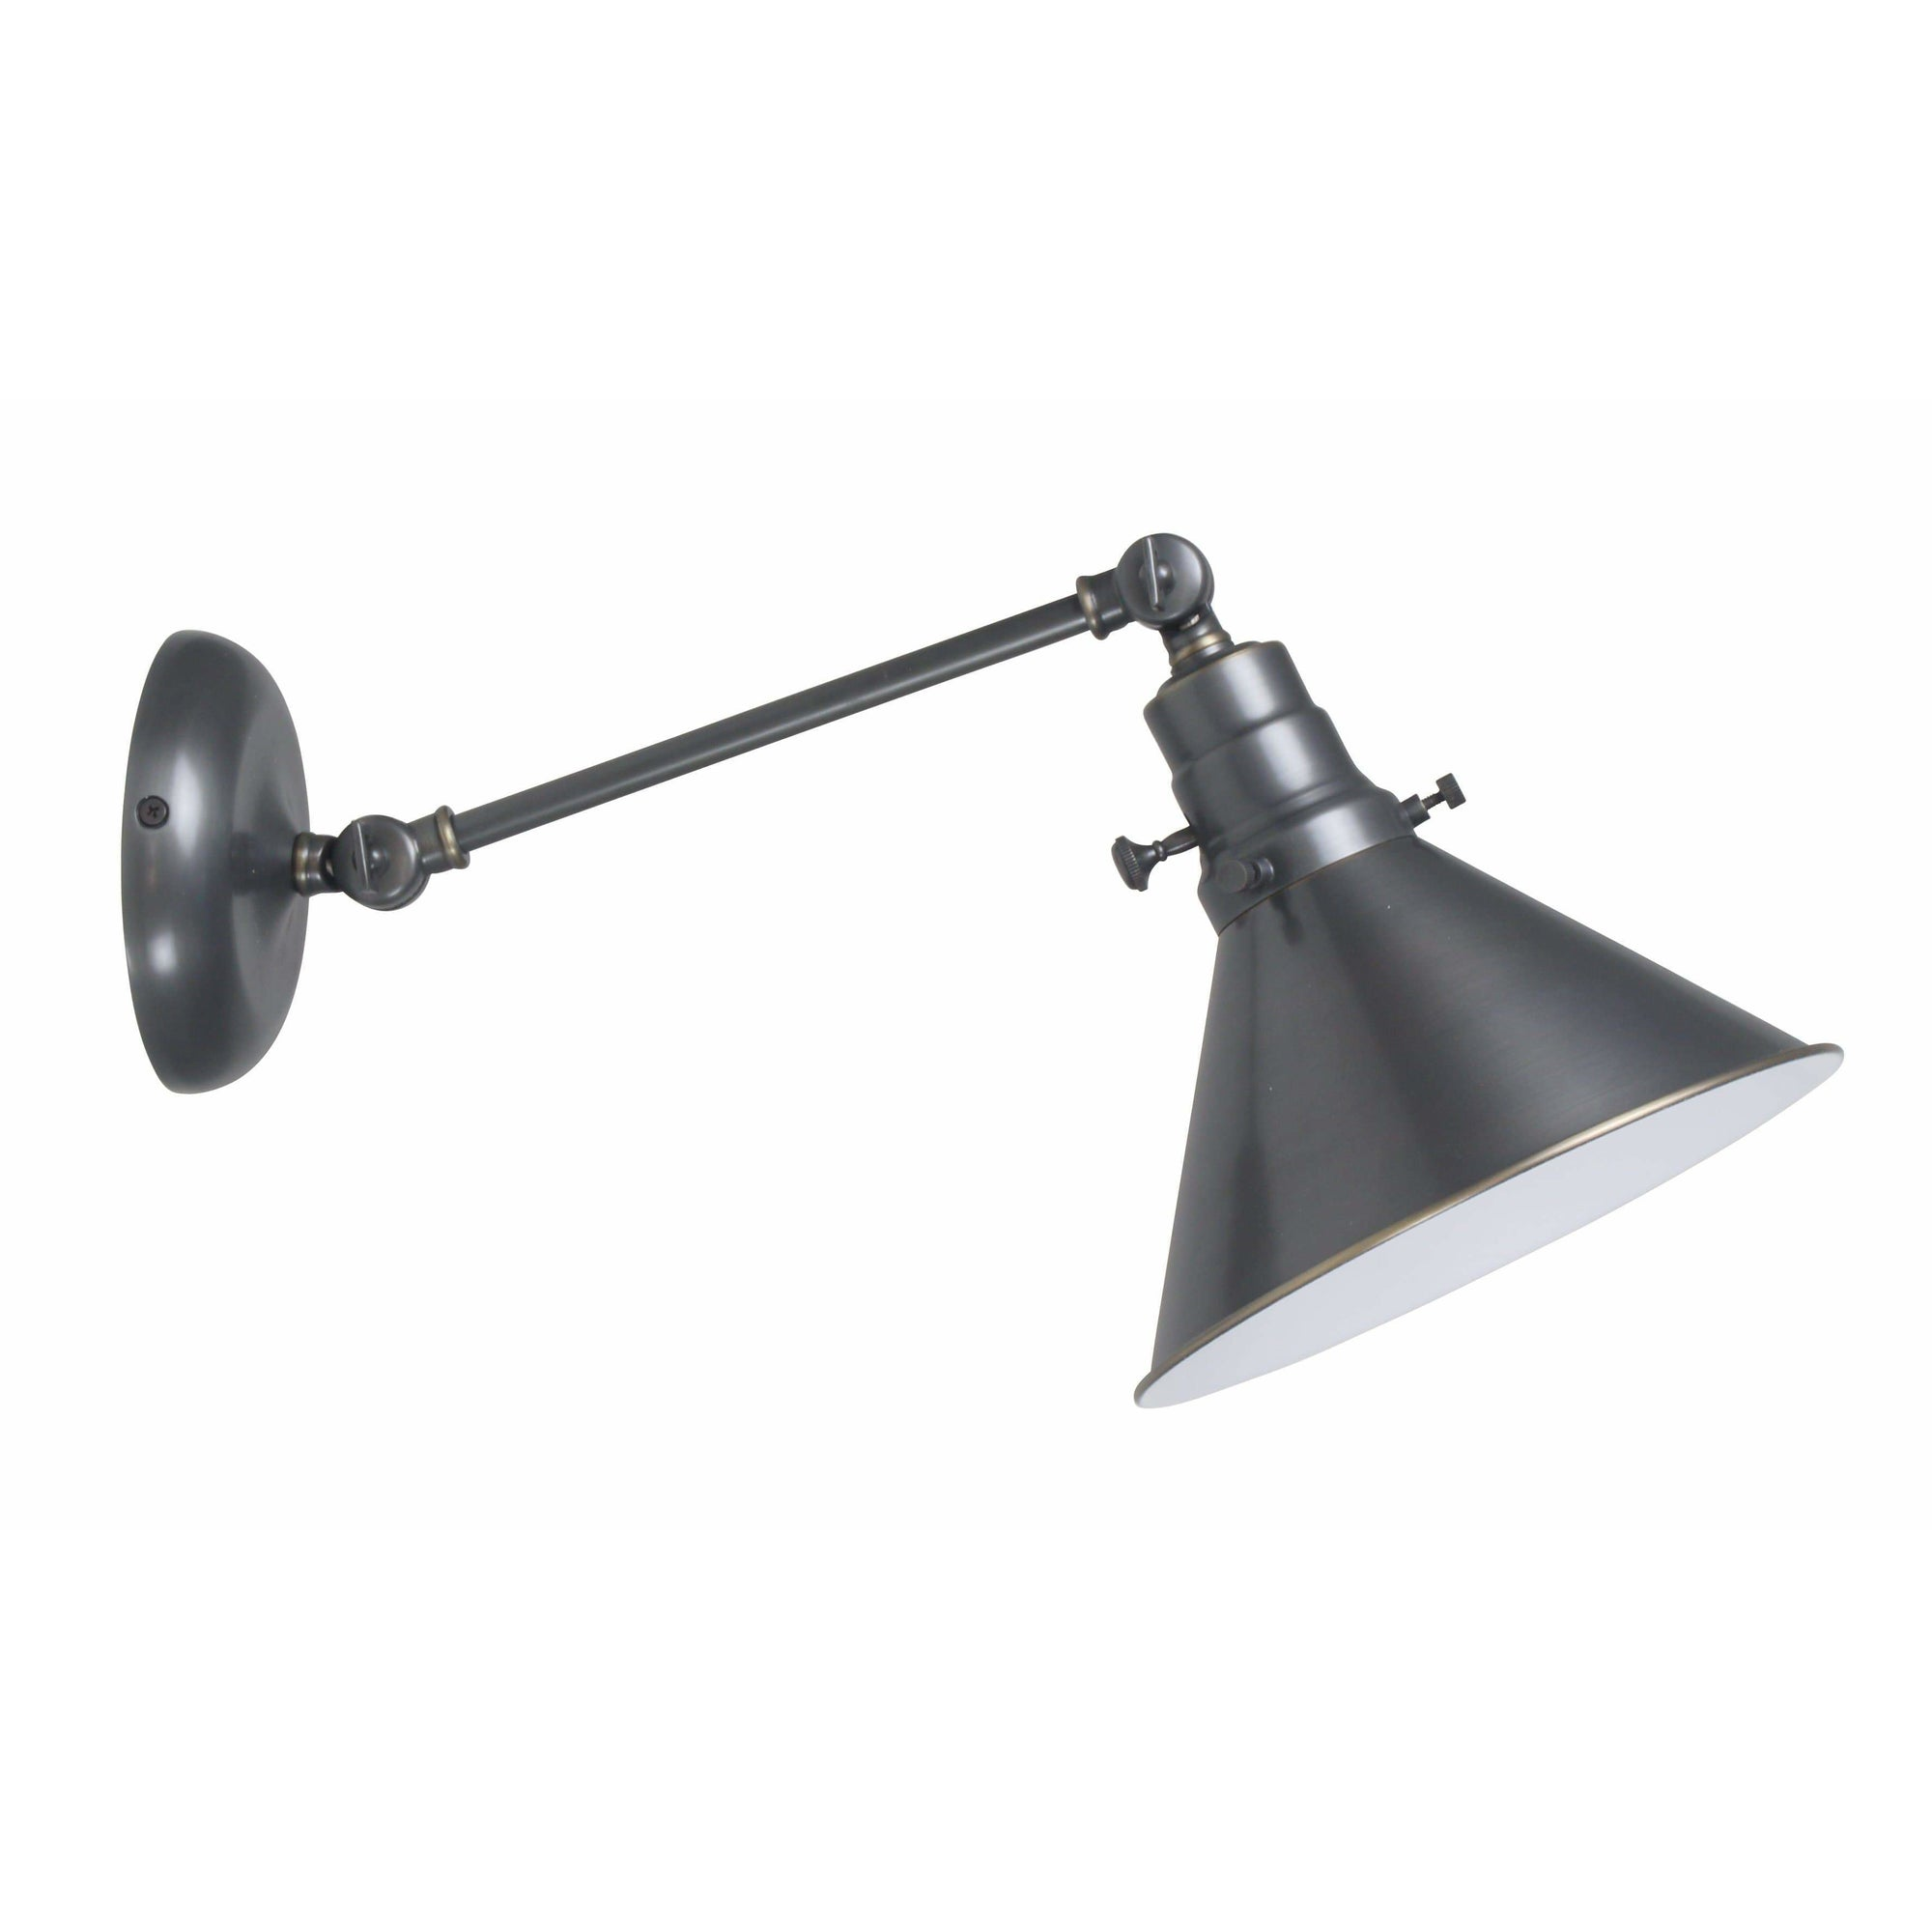 House Of Troy Wall Lamps Otis Wall Lamp by House Of Troy OT675-OB-MS